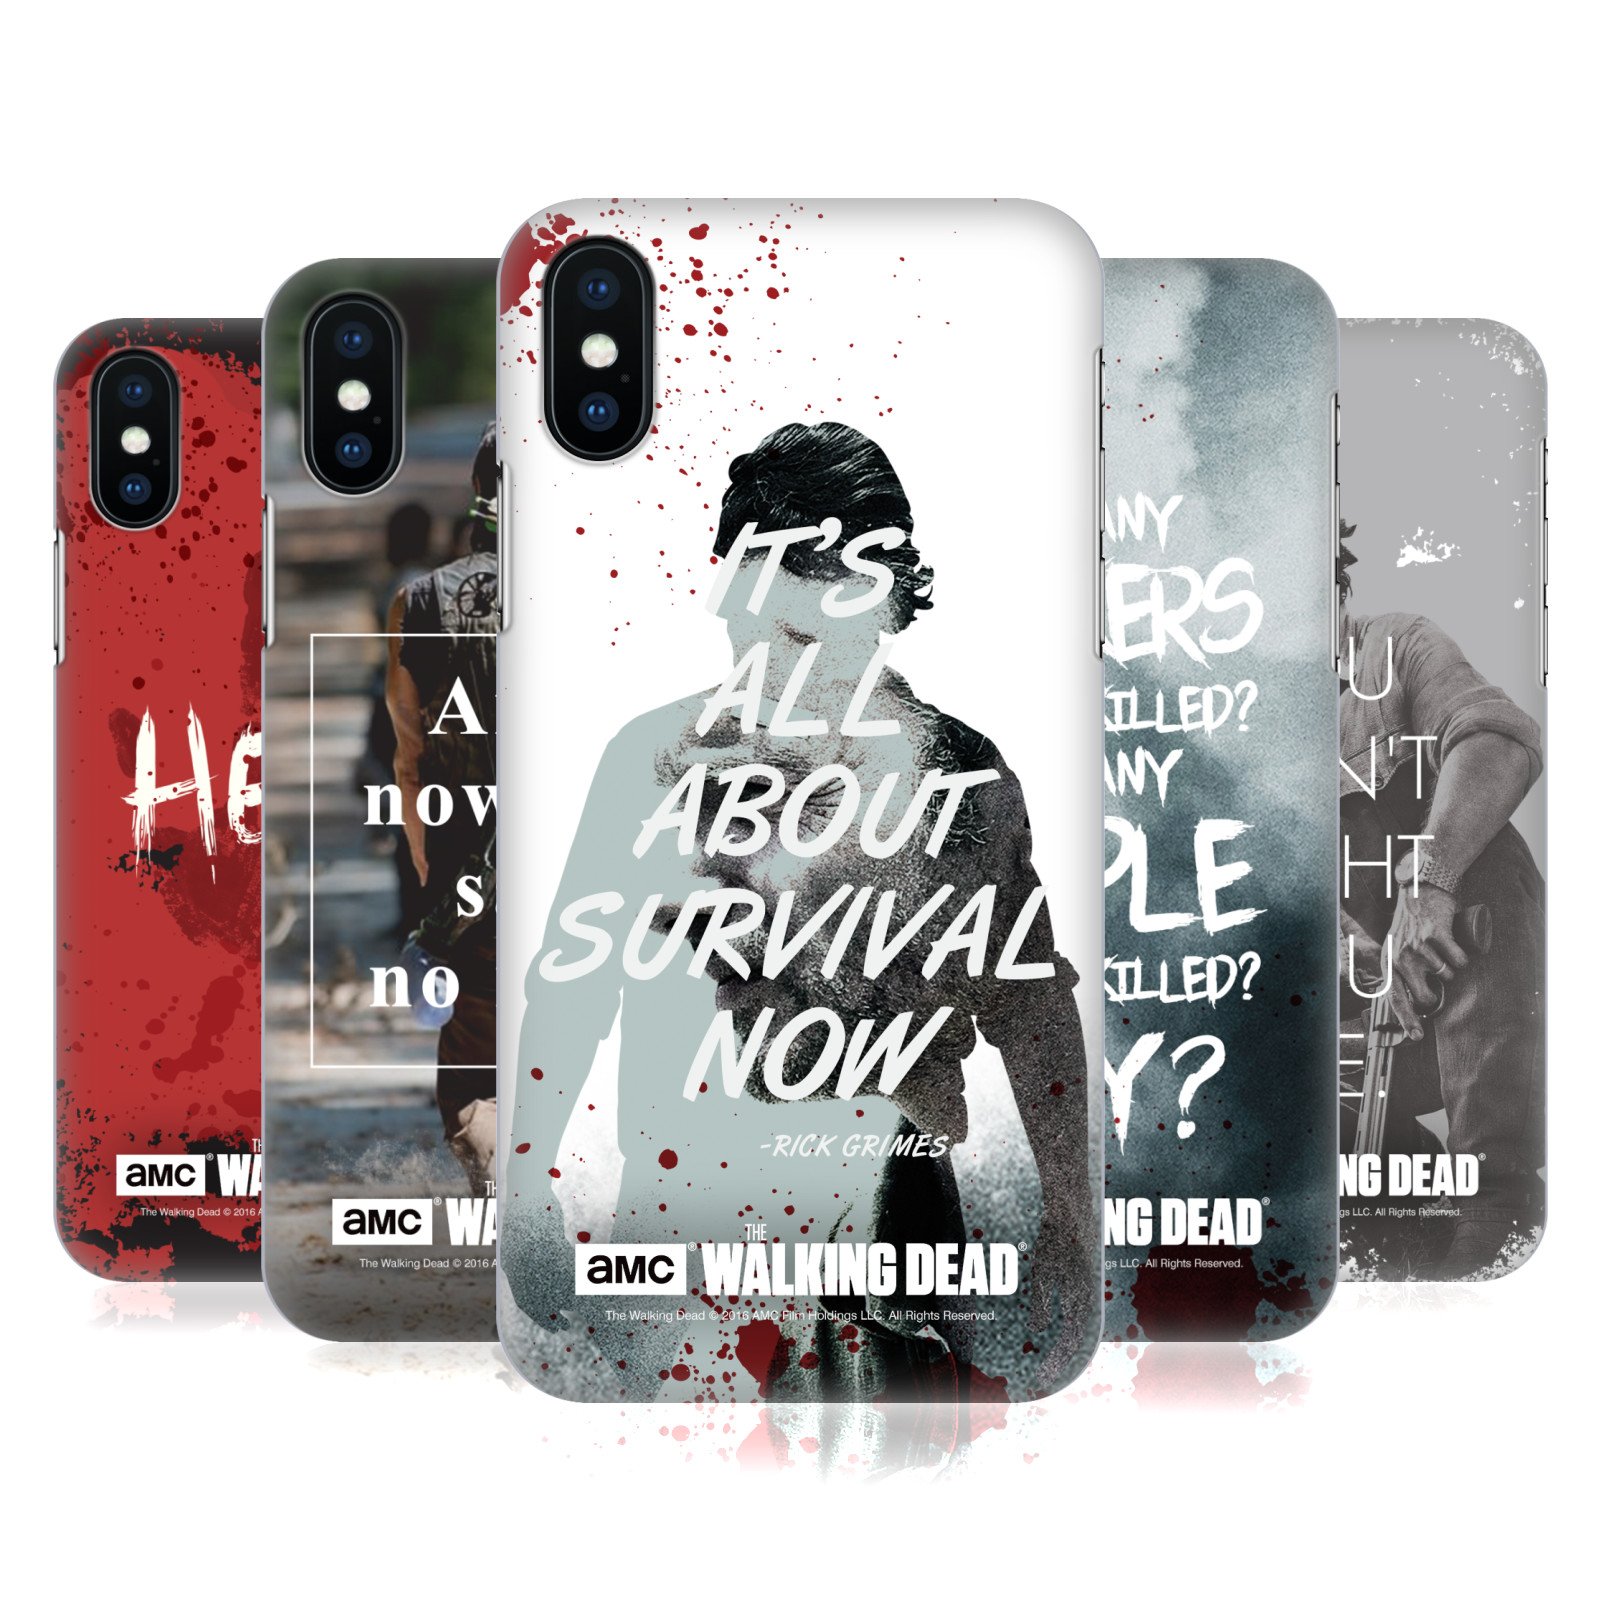 AMC The Walking Dead Quotes